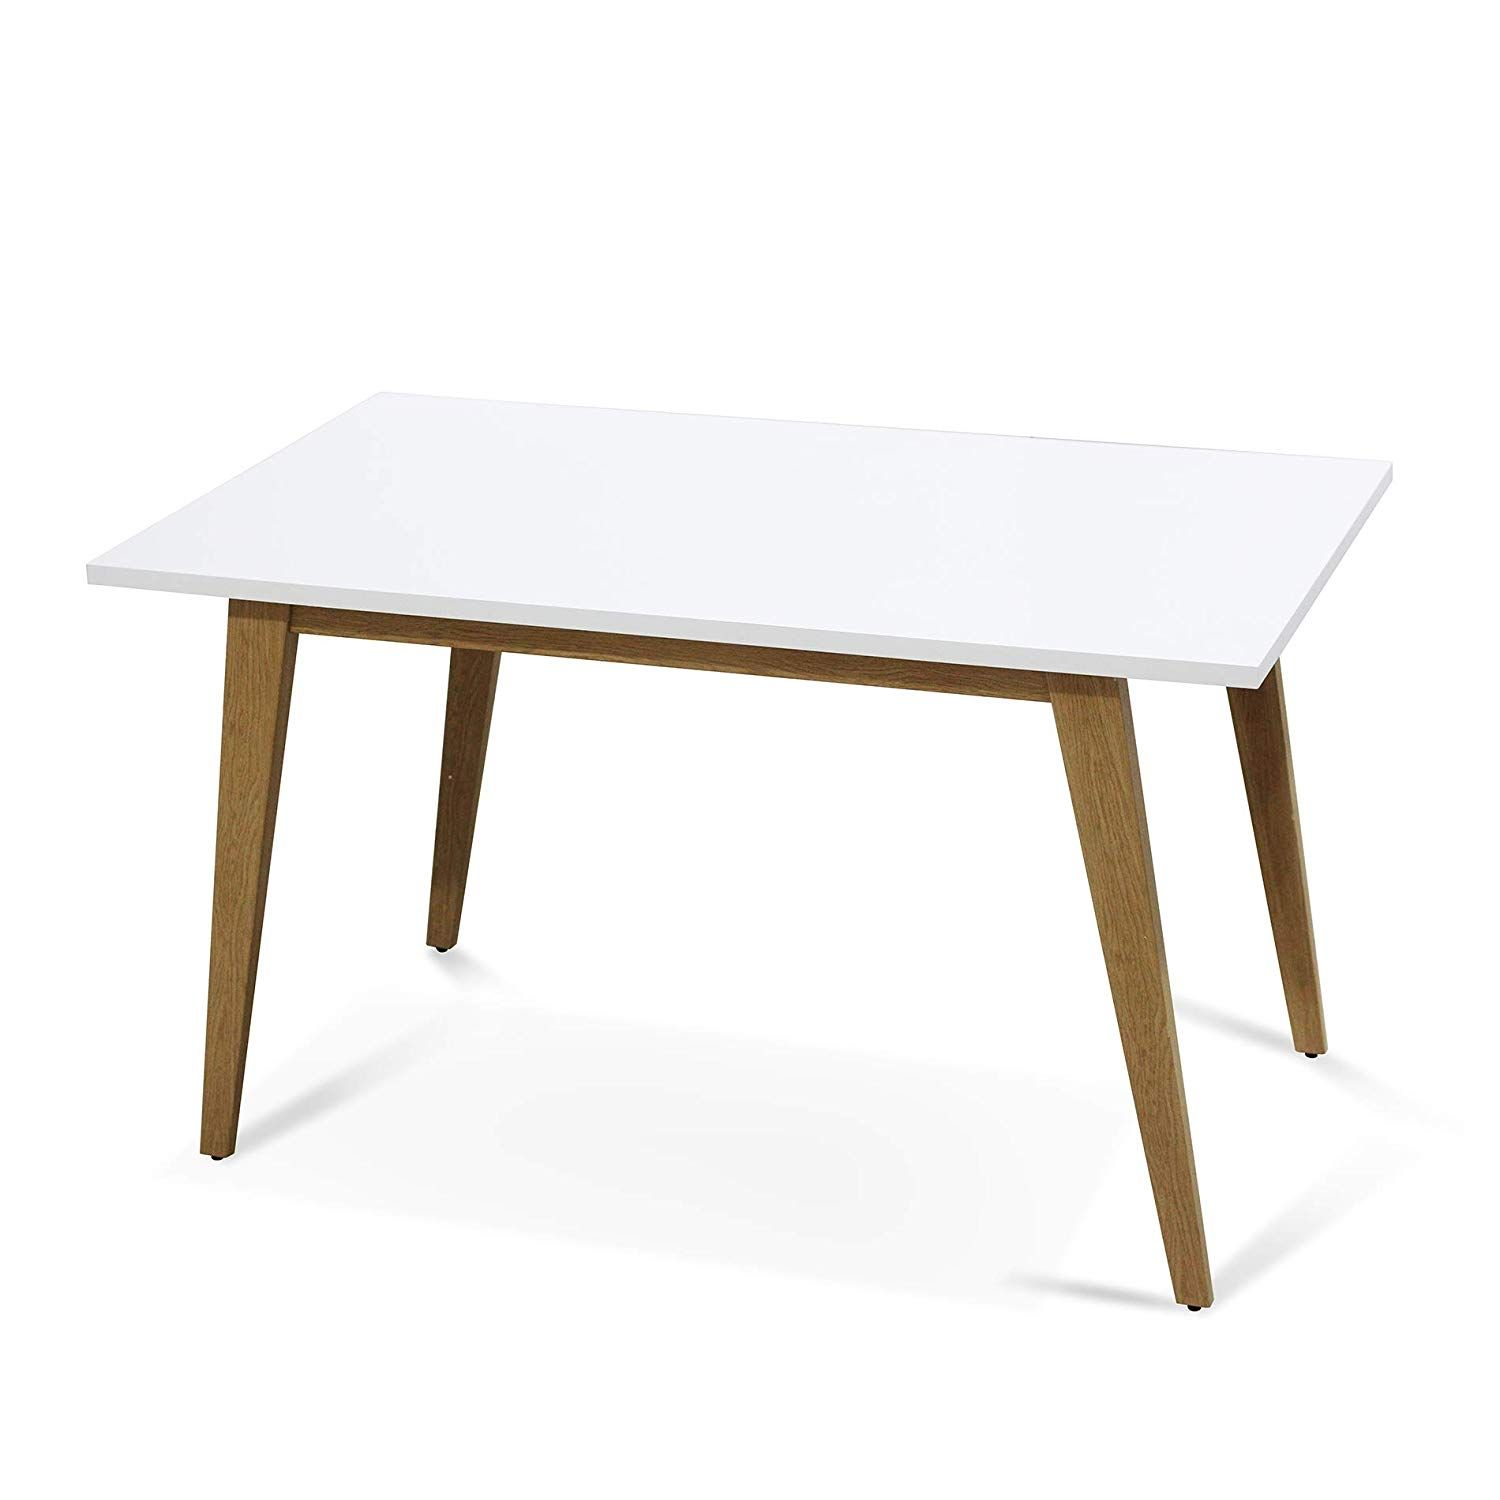 Ids Online Mlm 18748 T Contemporary Norway Simplicity Style Mdf